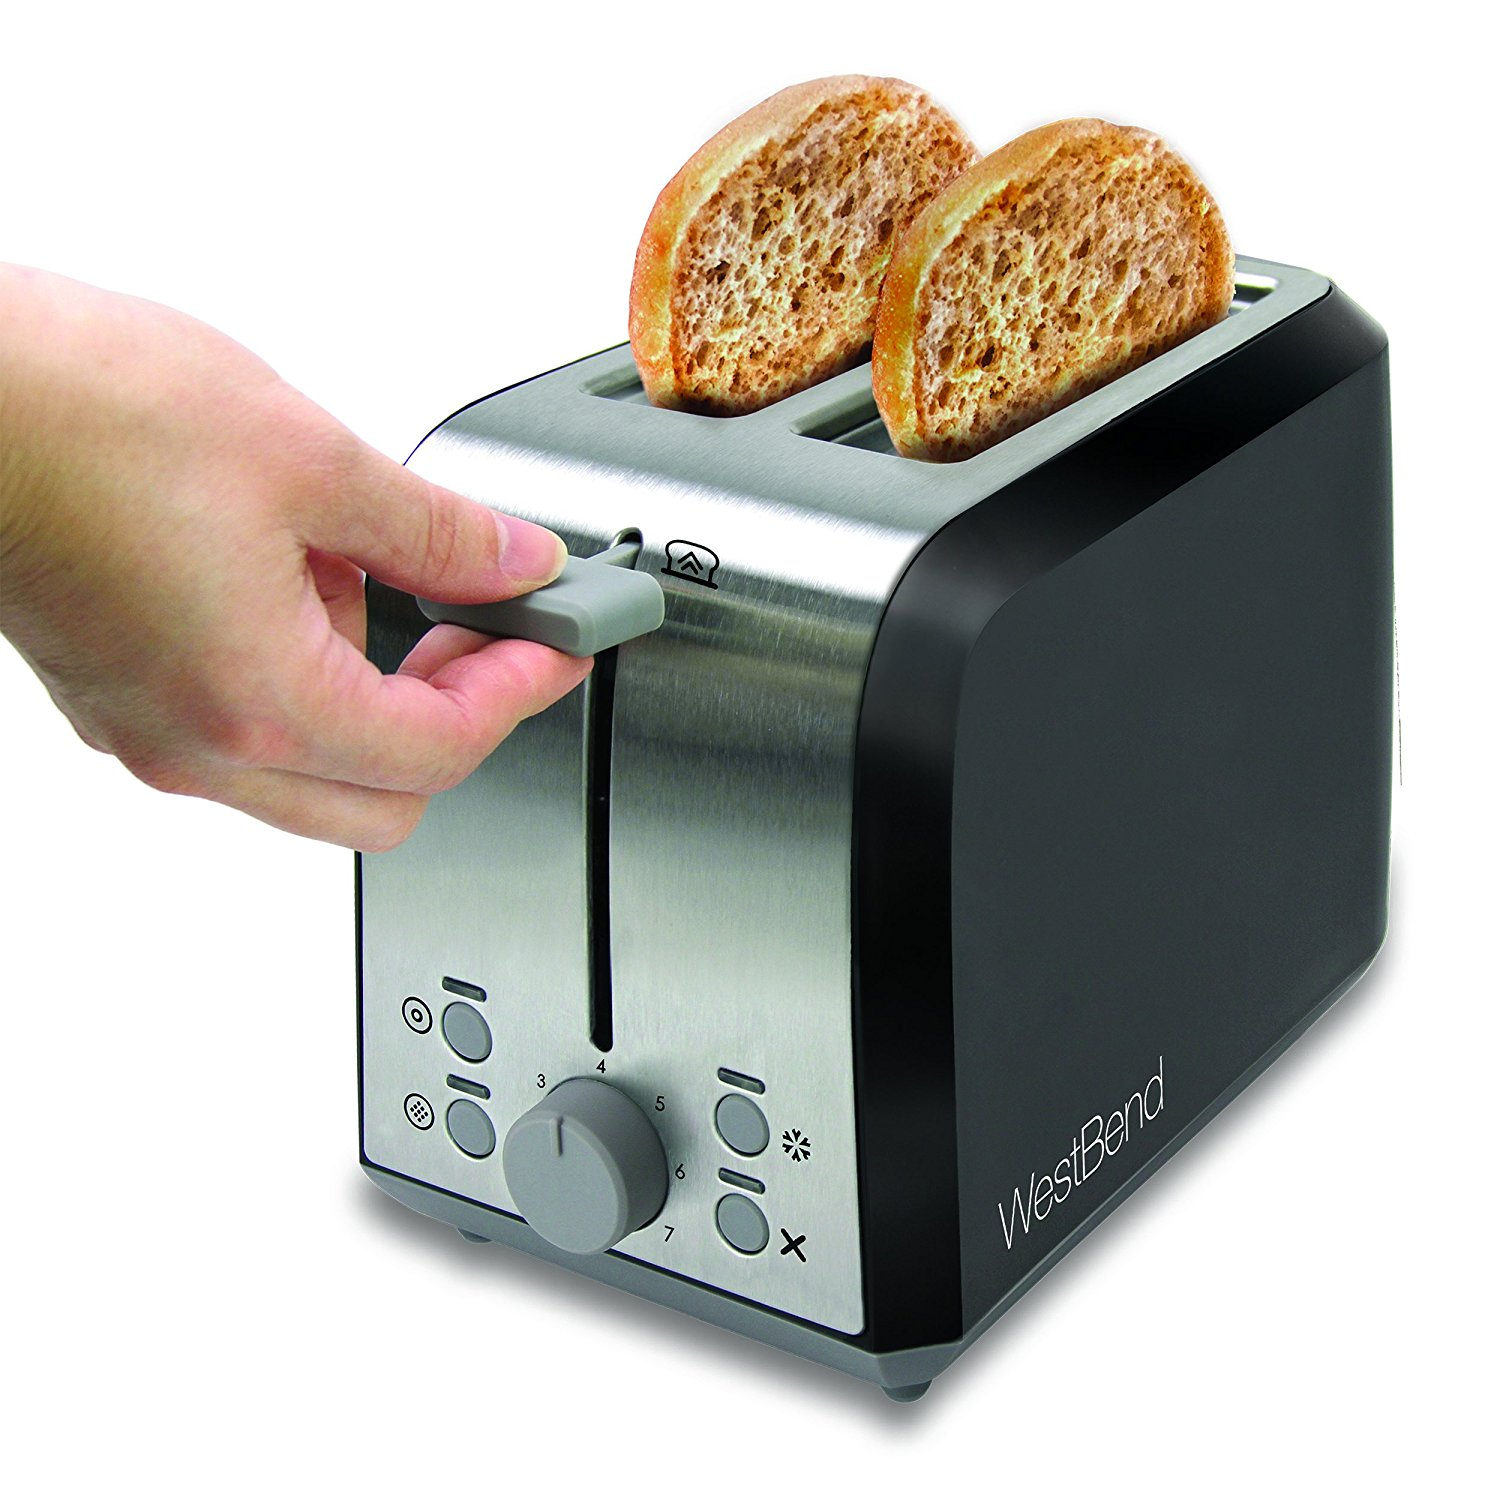 reviewed com wall beach rated toasters ultimate sellers ovens toaster best convection stainless steel slice red cool amazon dp reviews industrial hamilton broiler